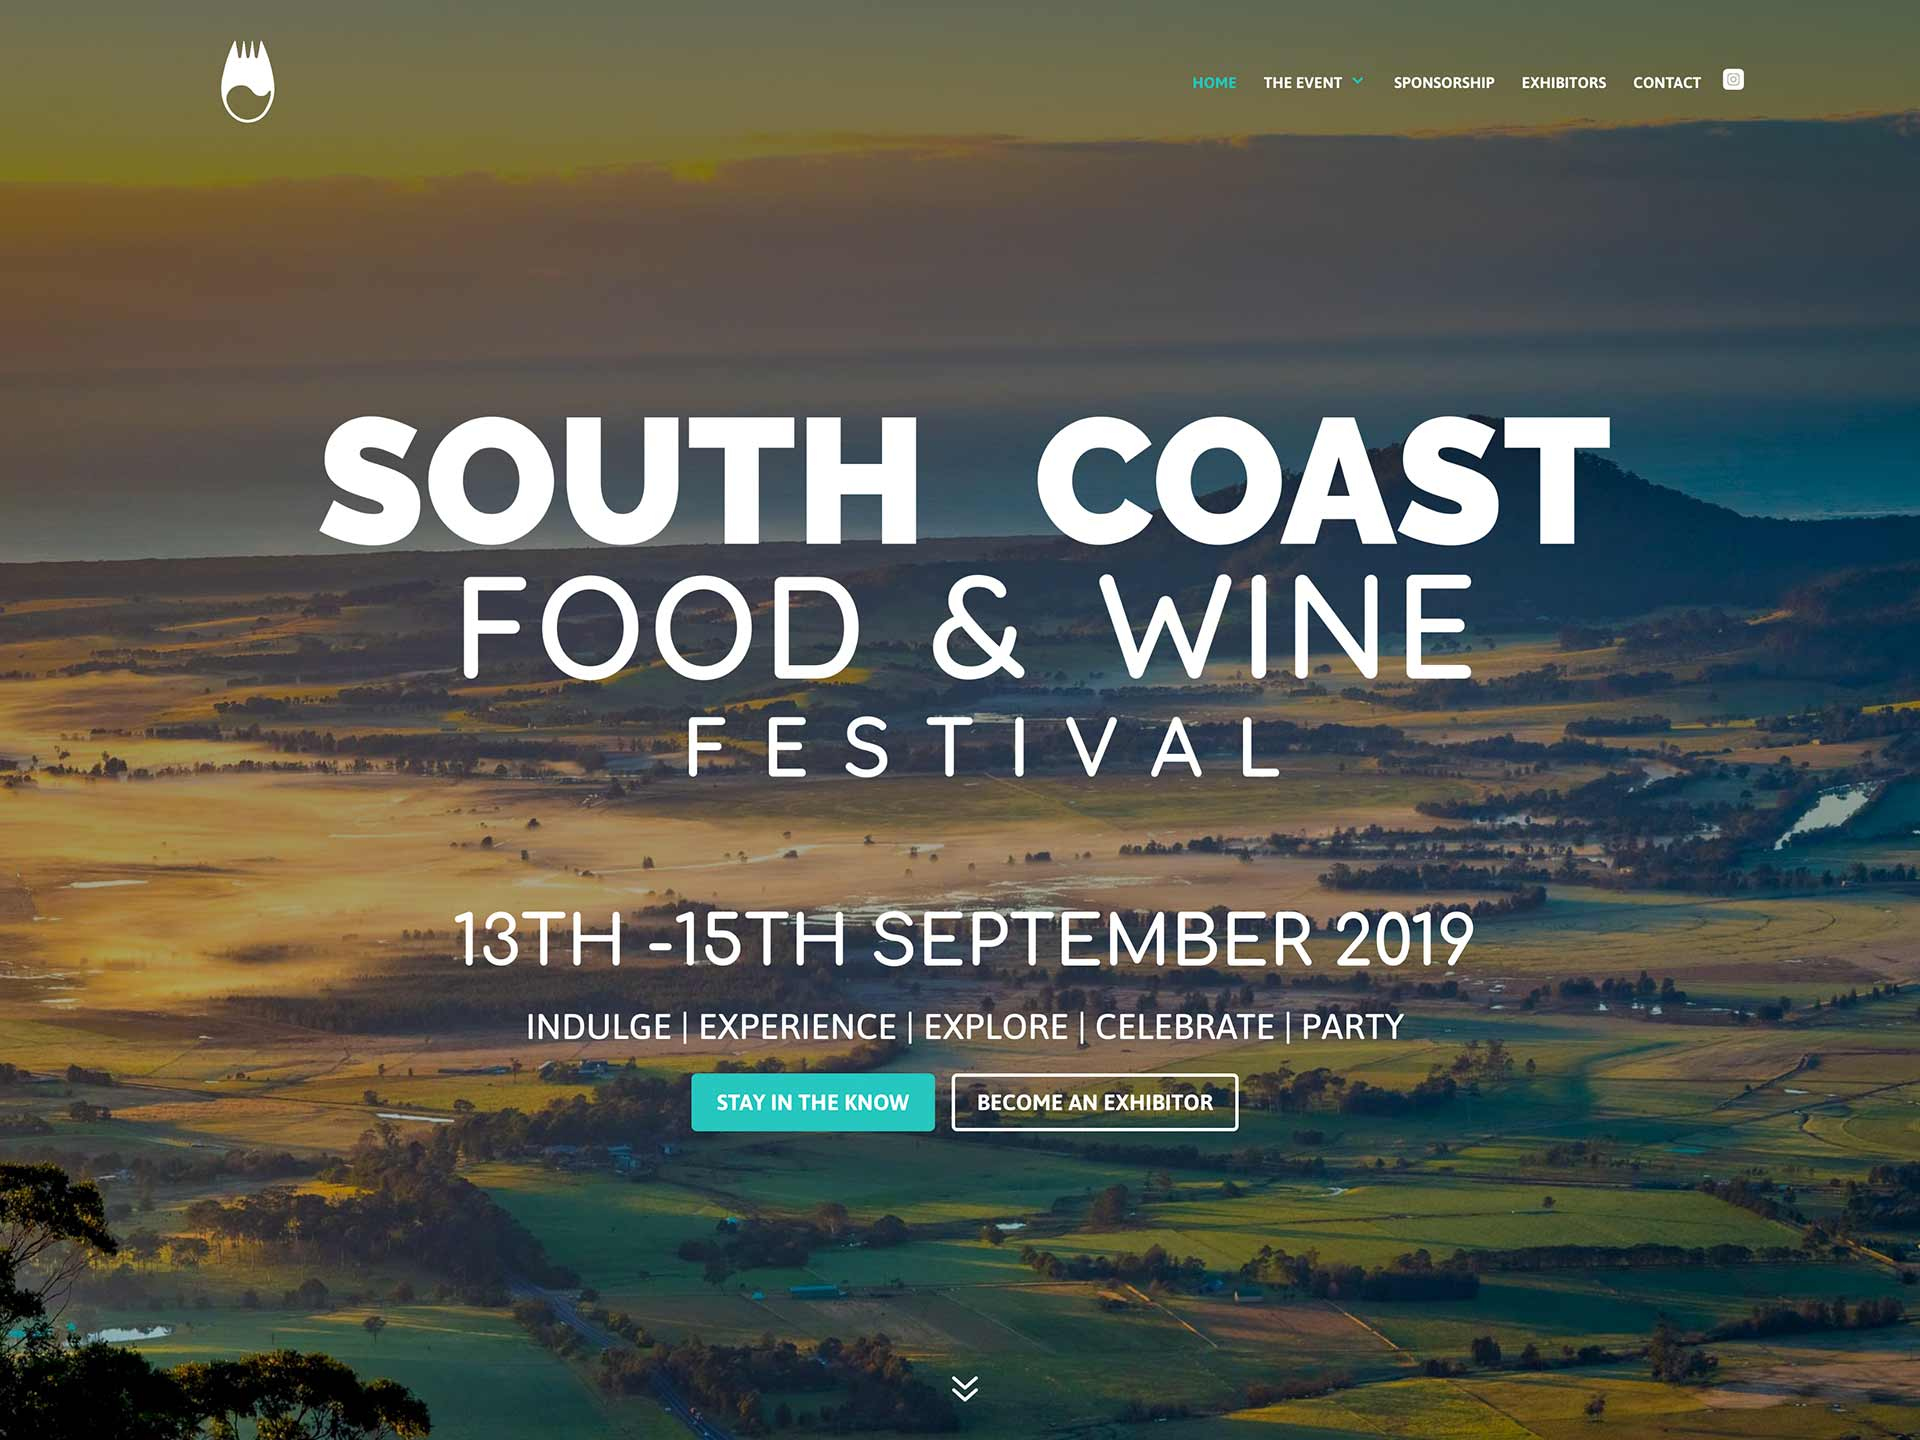 South Coast Food & Wine Festival